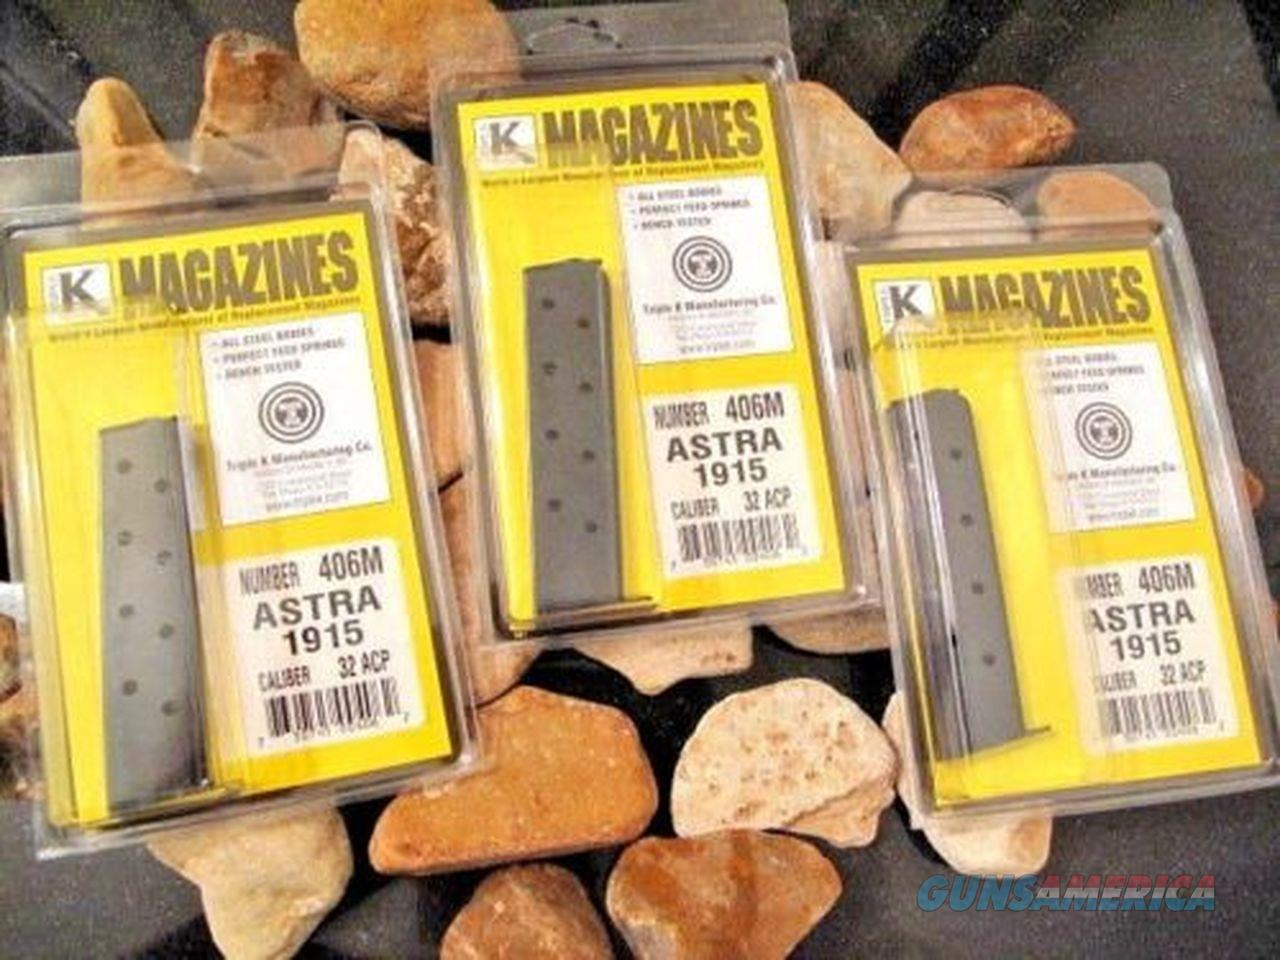 3-pack Fits ASTRA Model 1915 .32 ACP CALIBER 9 ROUND Magazine Mag 32 Mags ACP  Non-Guns > Ammunition